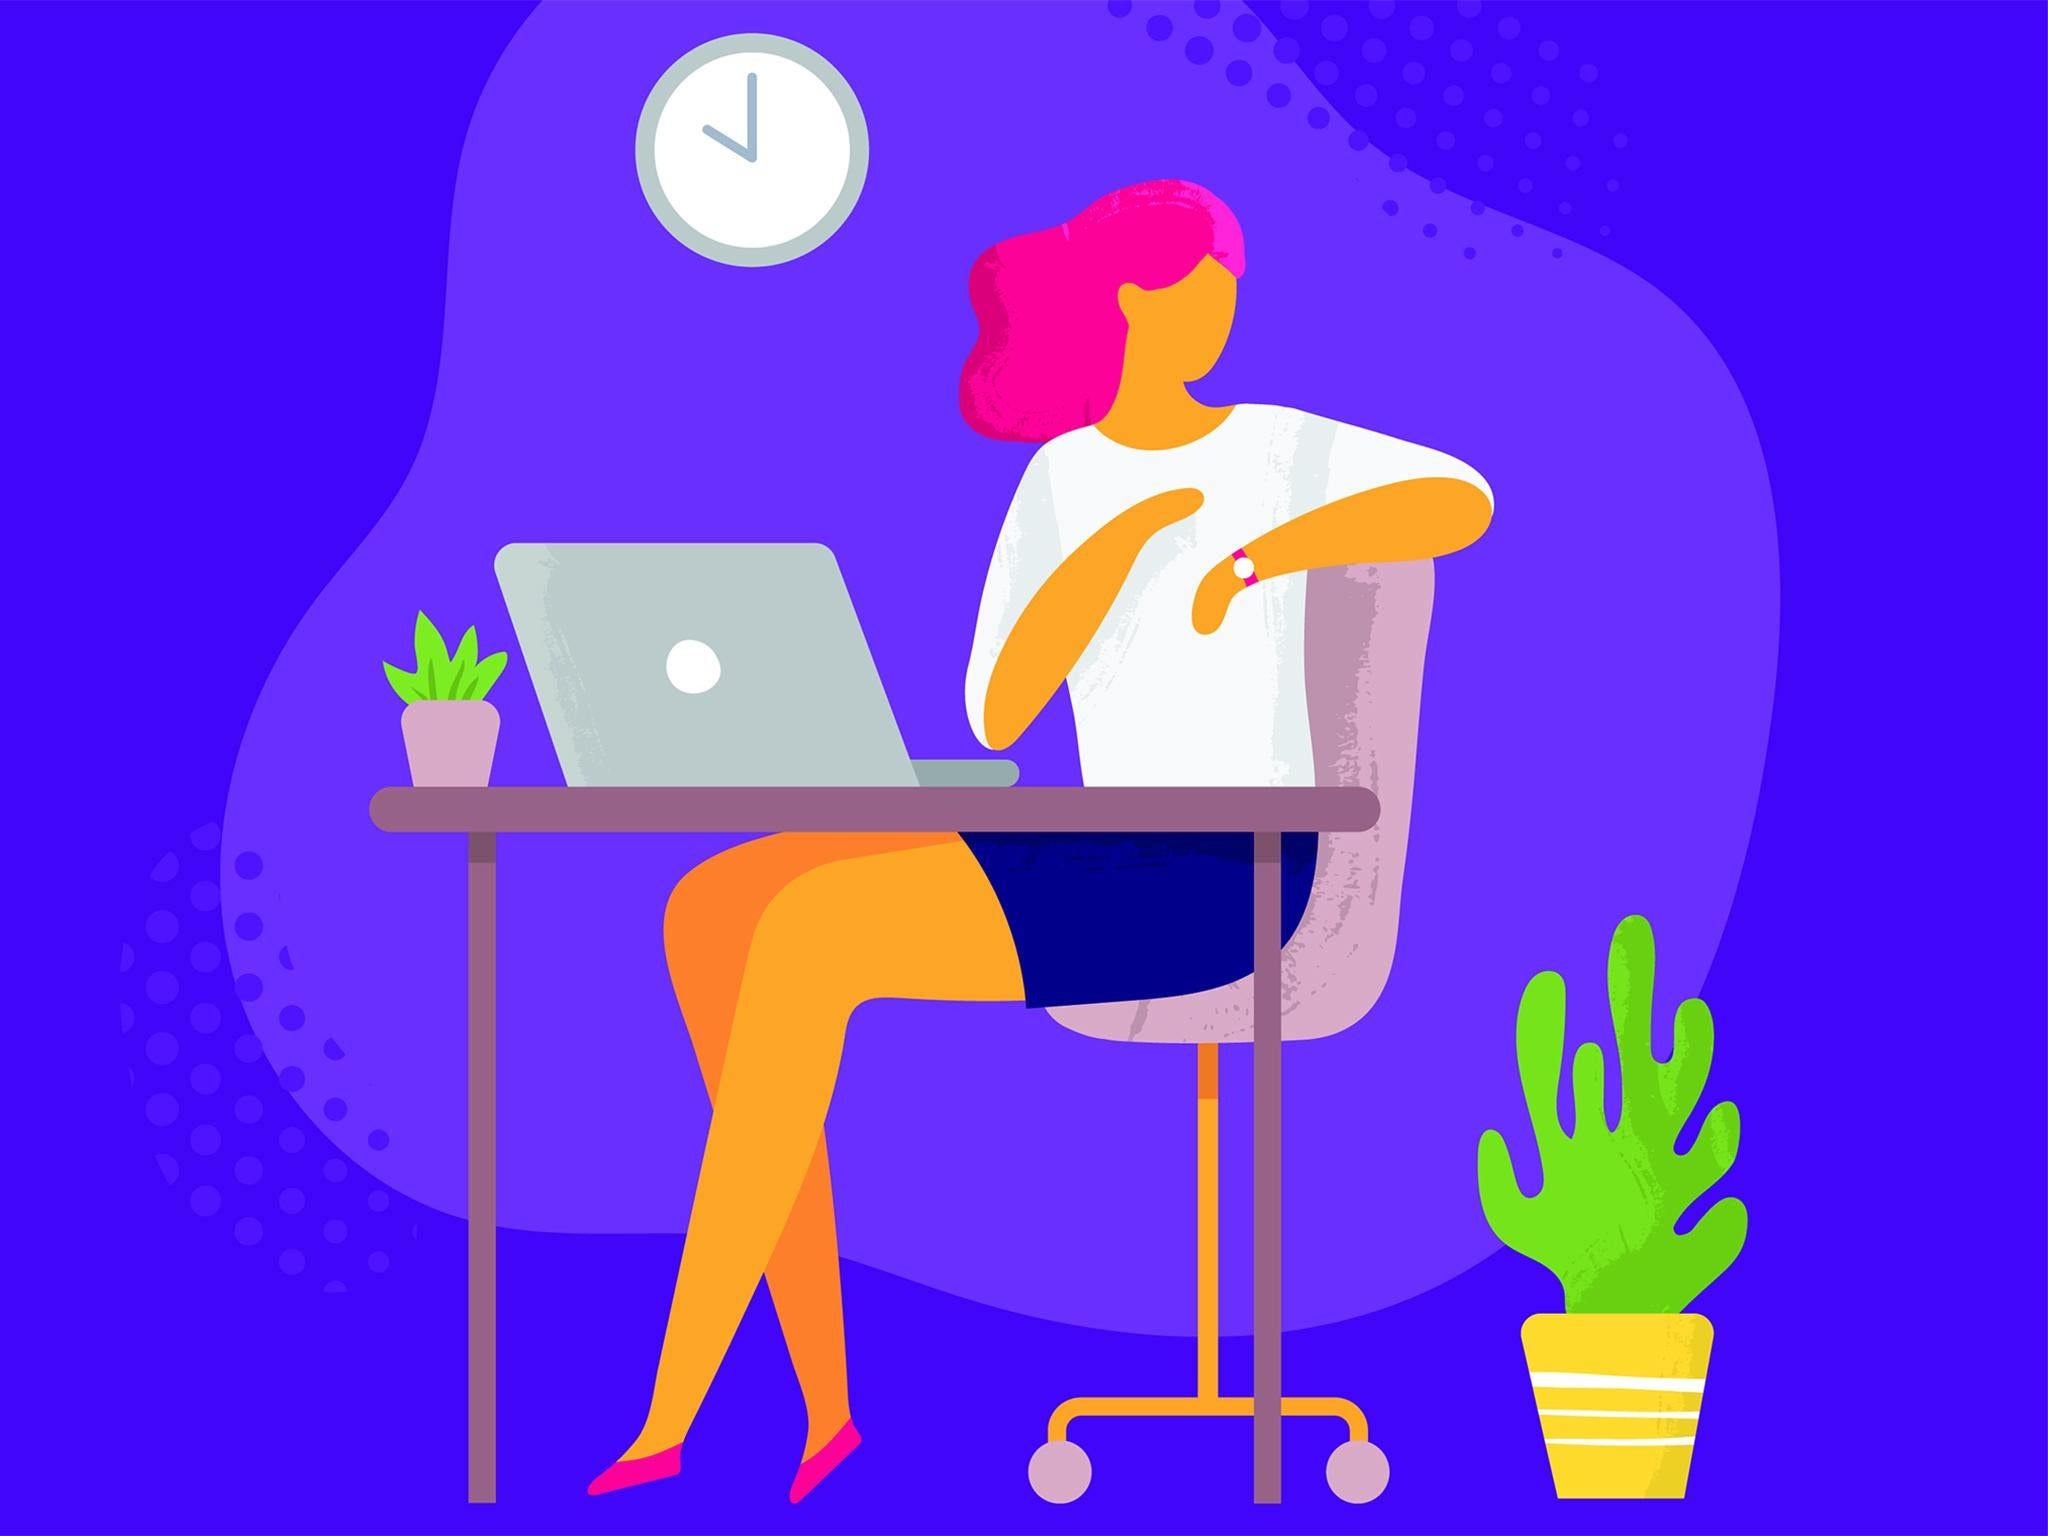 The workplace is not fit for purpose when it comes to the menopause